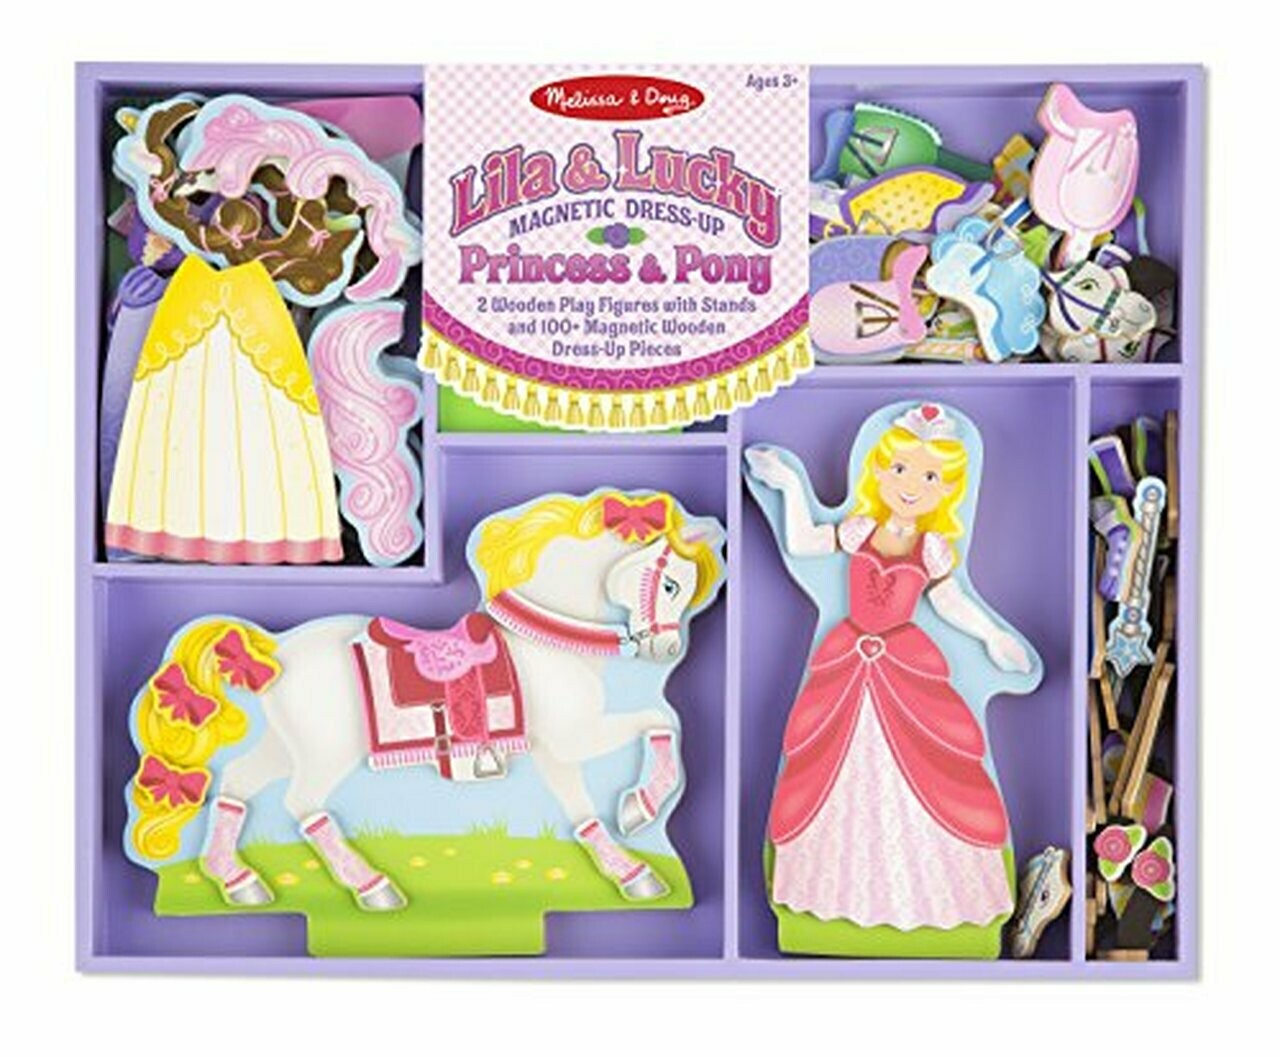 9281-ME Princess & Pony Magnetic Dress-Up Set